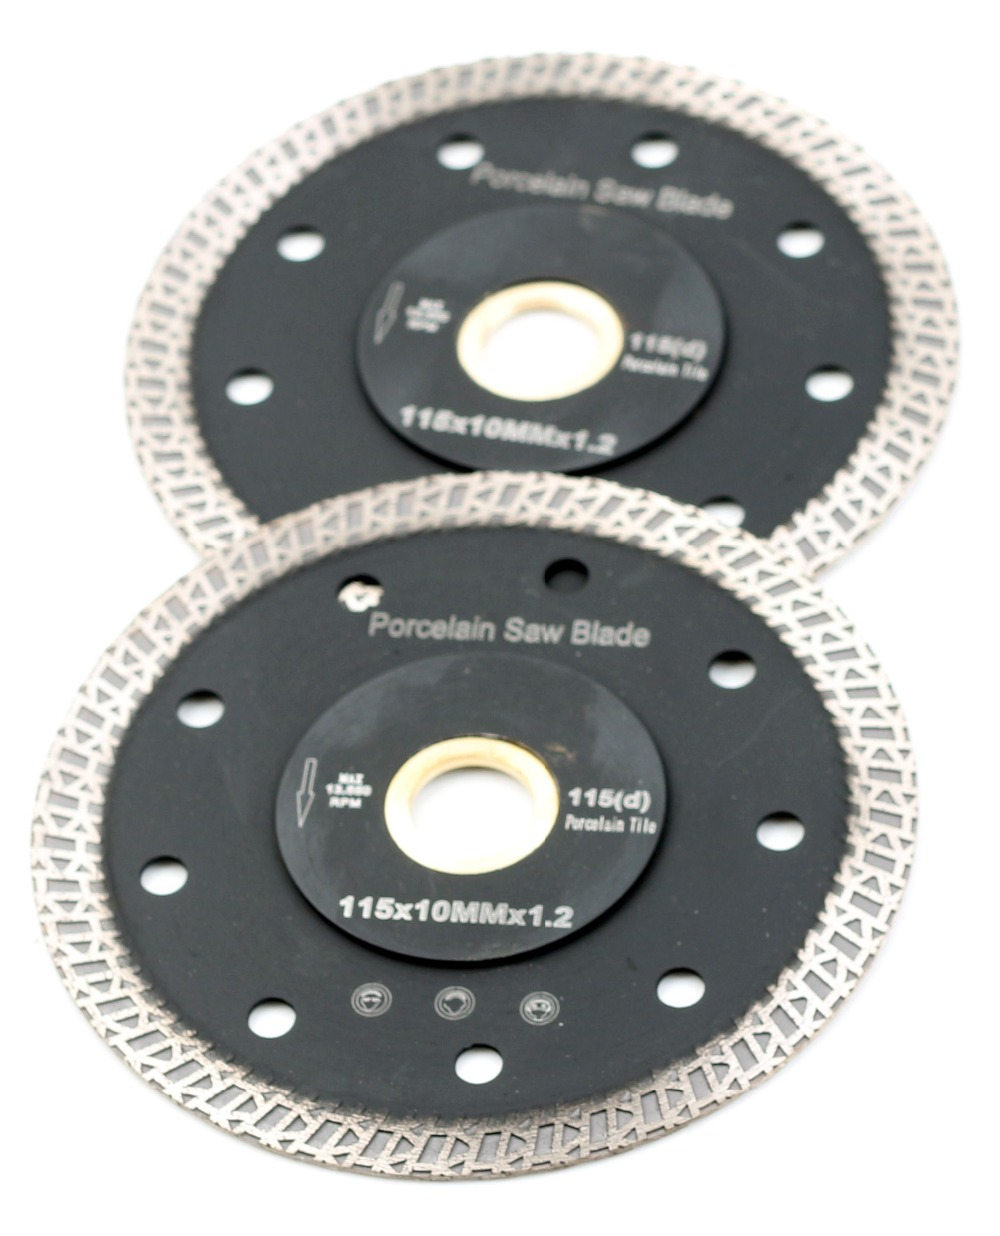 DC-SRSB02 D115mm Super Thin 4.5 Inch Diamond Porcelain Cutting Blade For Porcelain Tile Cutting